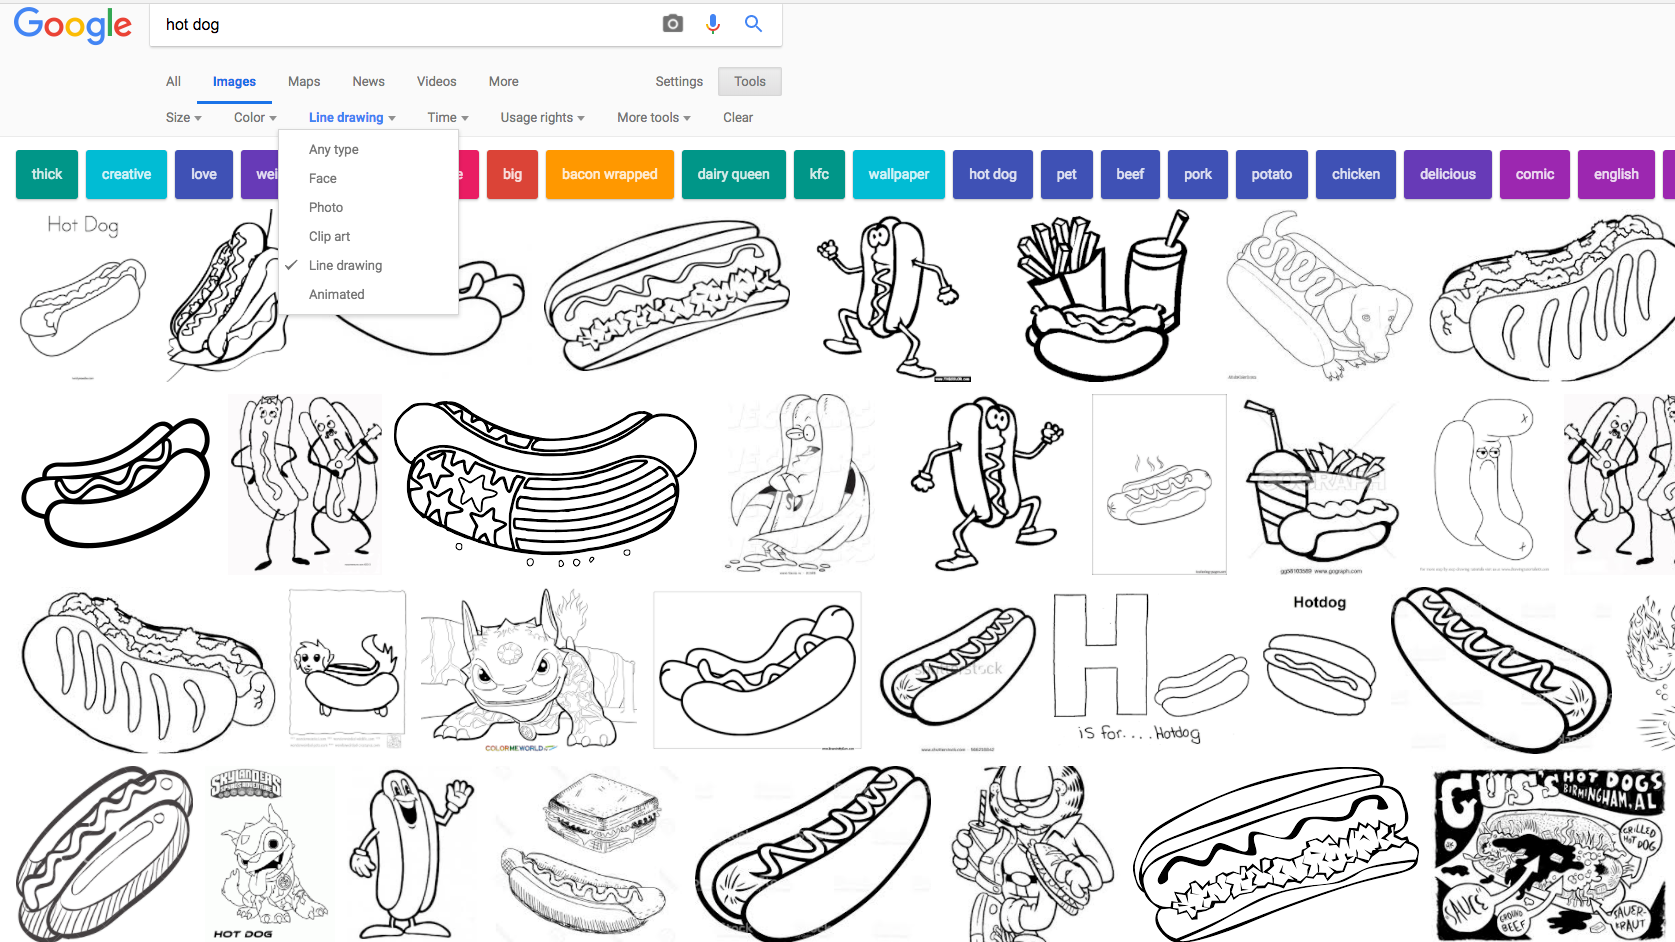 It is a picture of Playful Google Coloring Pages